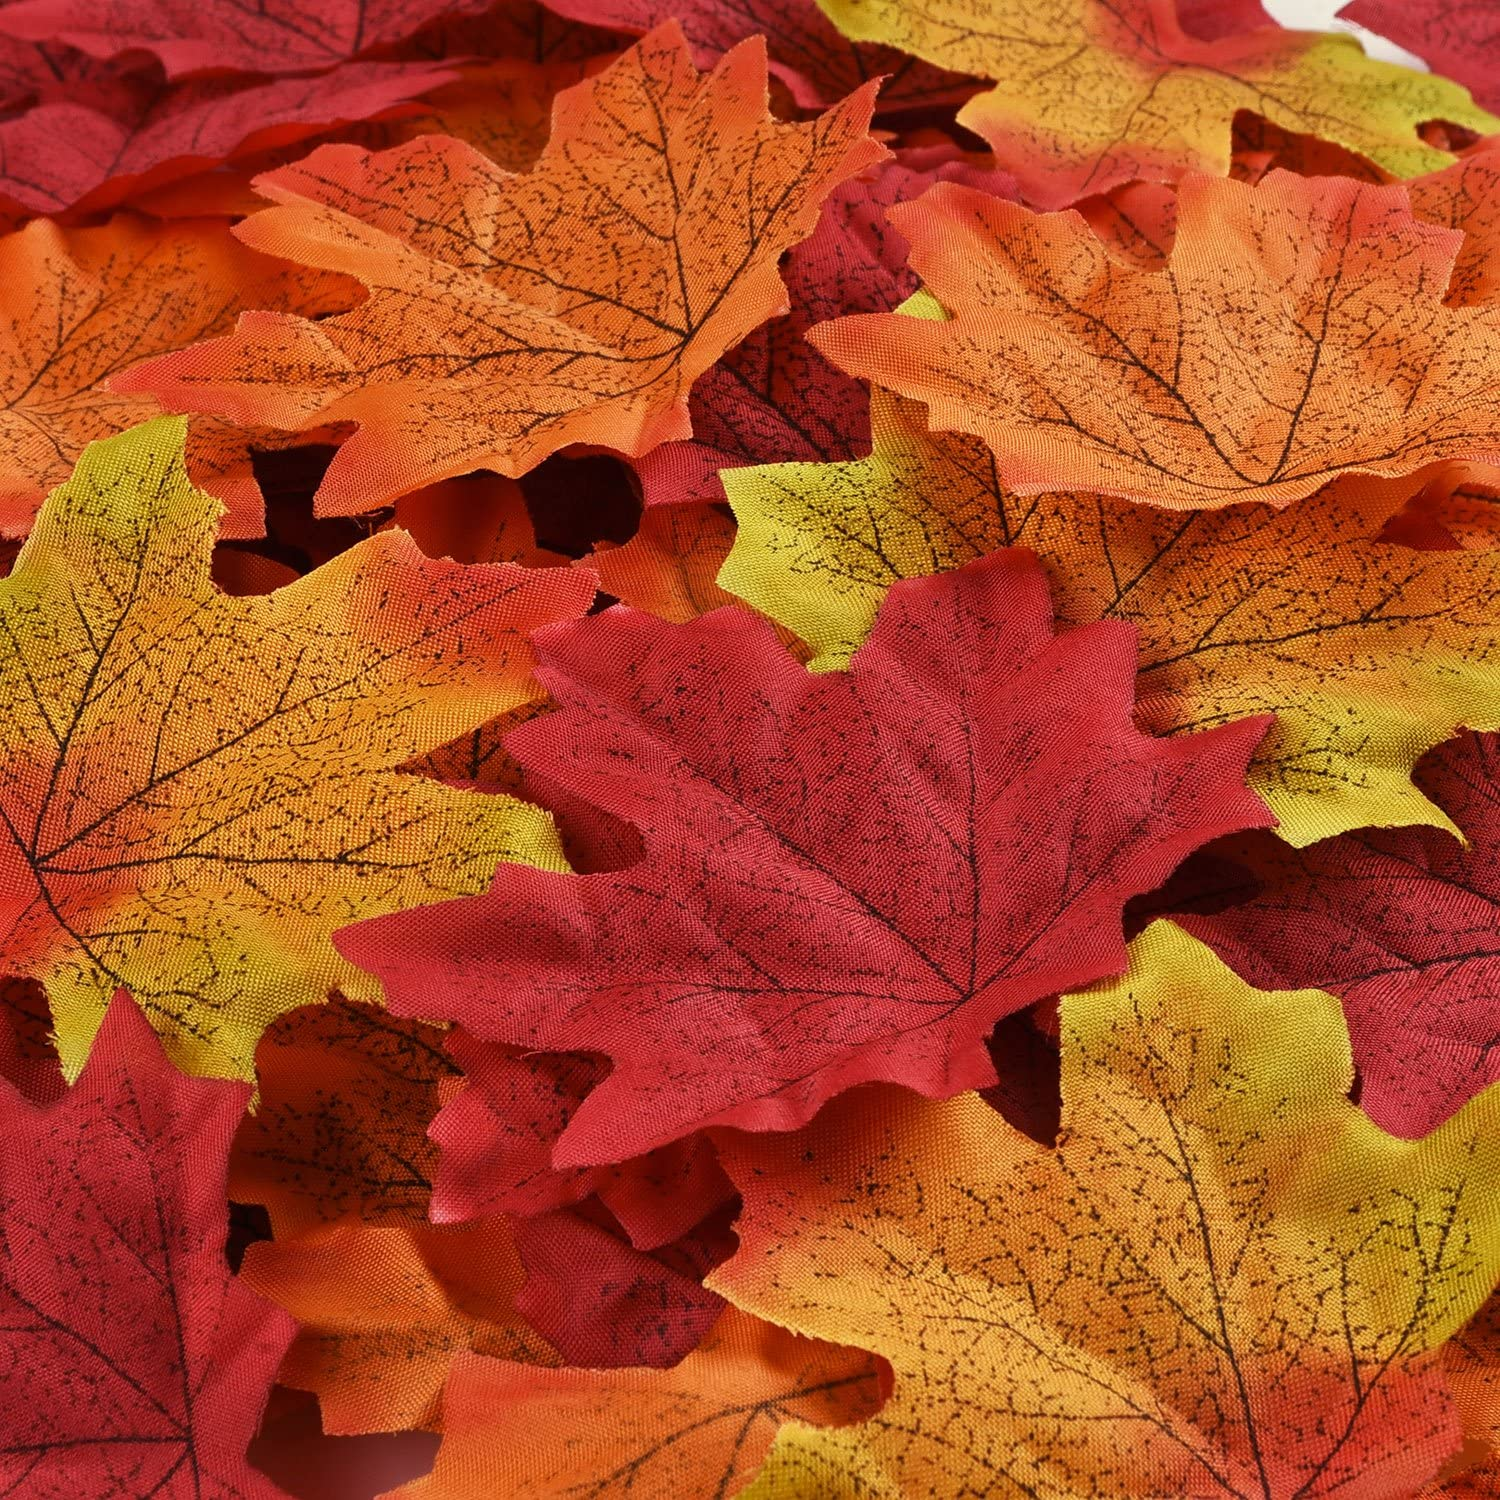 Hotop 150 Pieces Maple Leaves Artificial Maple Leaves Autumn Fall Maple Leaf for Art Scrapbooking Wedding House Decorations Christmas Party or Thanksgiving Day Decor (Multicolor)